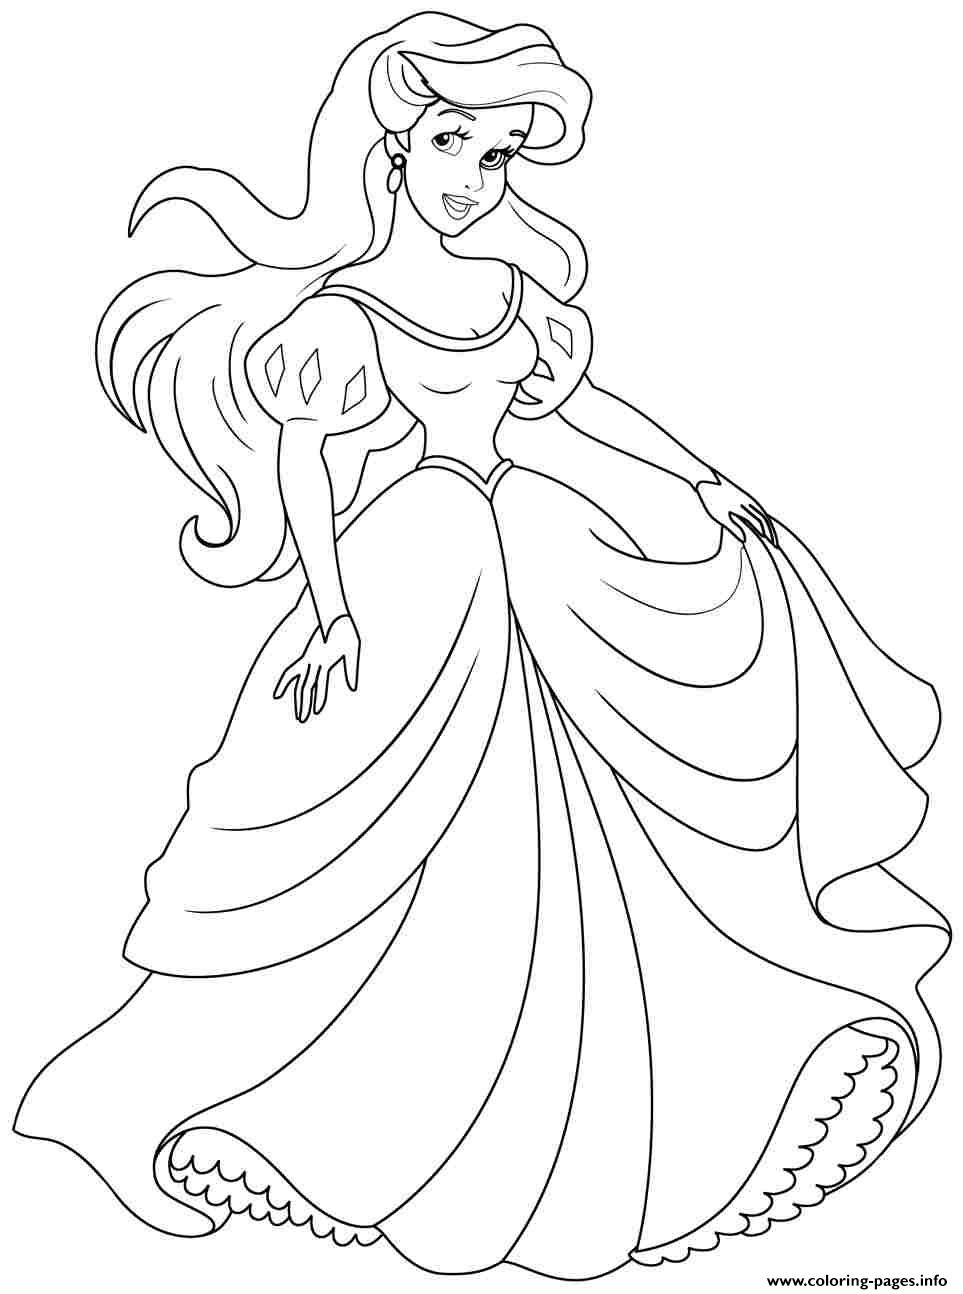 - Princess Ariel Human Coloring Pages Printable